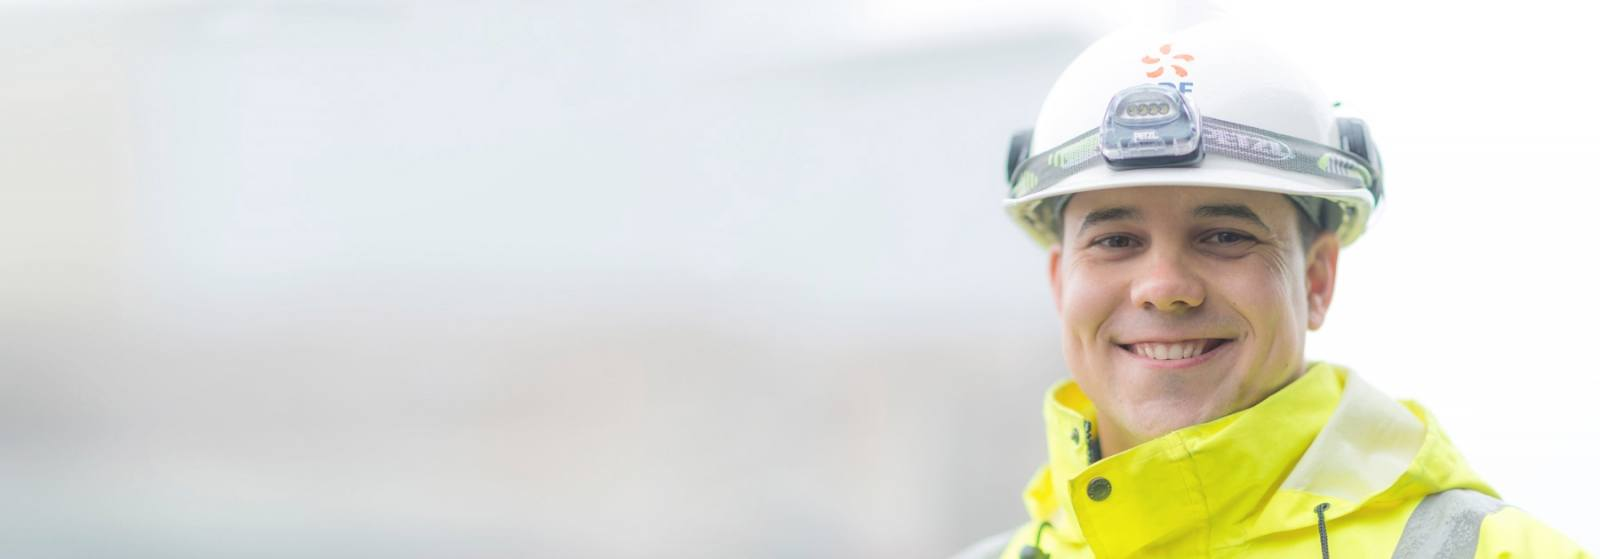 Picture of an engineer in a white hard hat smiling